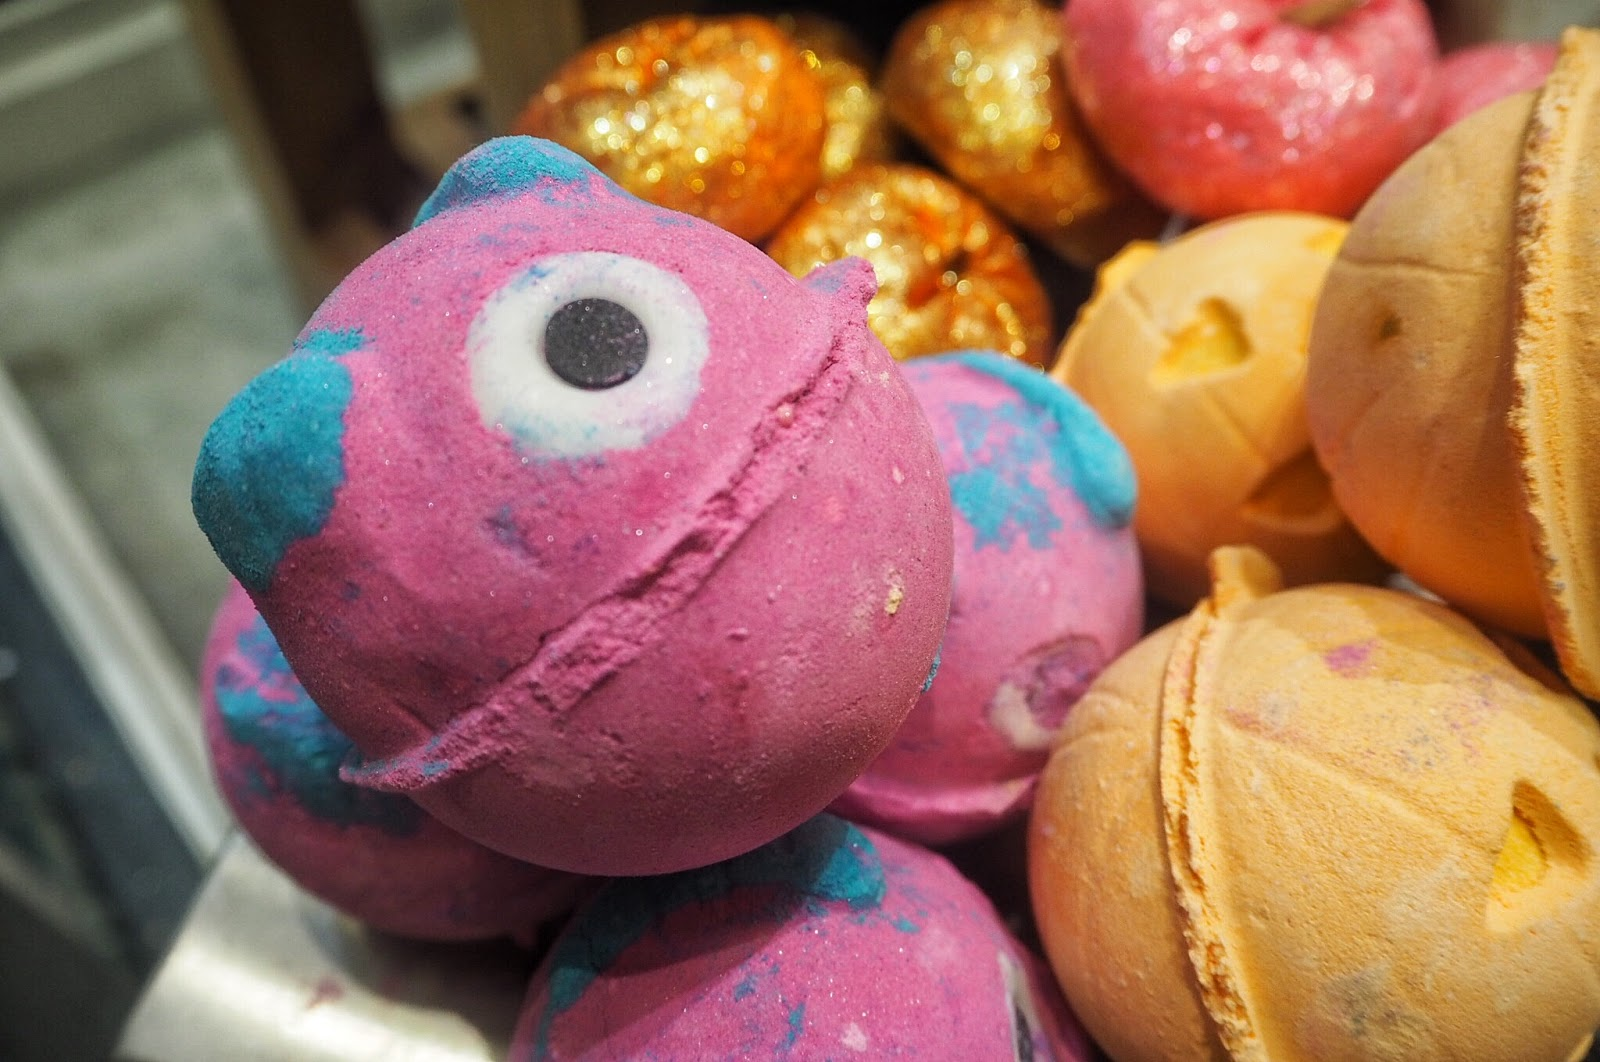 Lush, Halloween, 2017, Bath bombs, Bubble Bars, Autumn, Monsters Ball, Monsters Inc